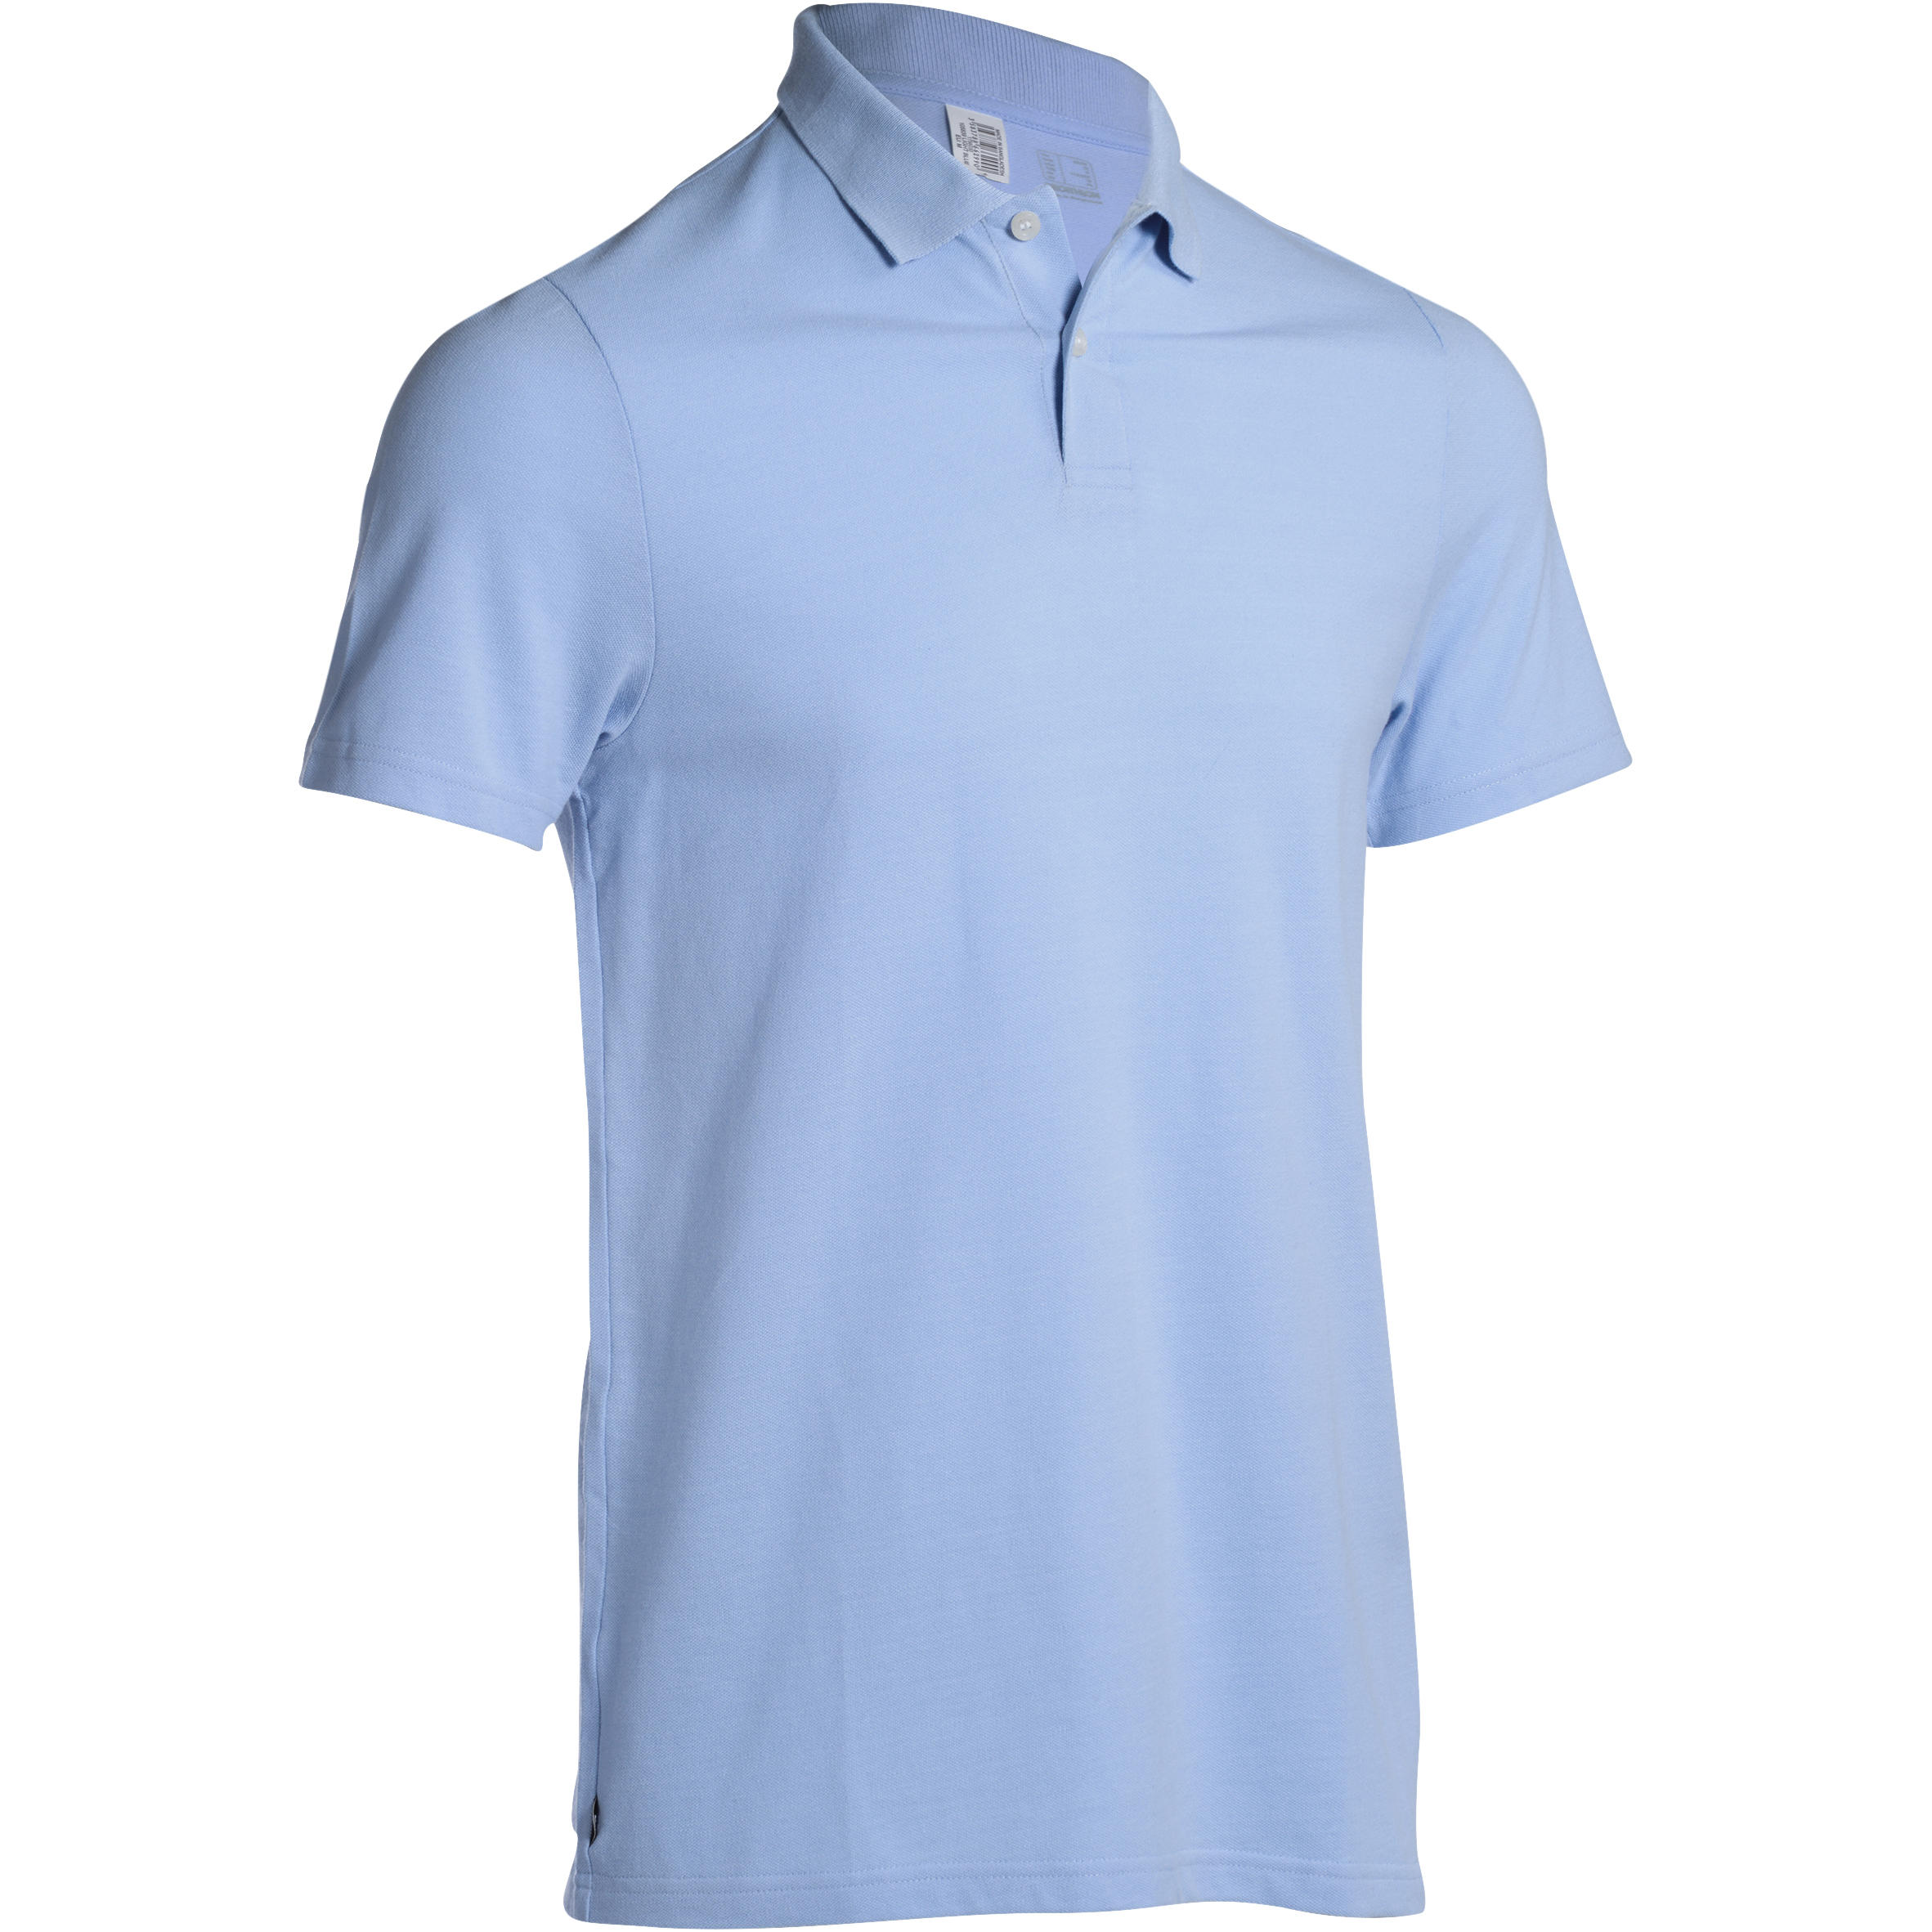 100 Men's Golf Short Sleeve Warm Weather Polo - Sky Blue